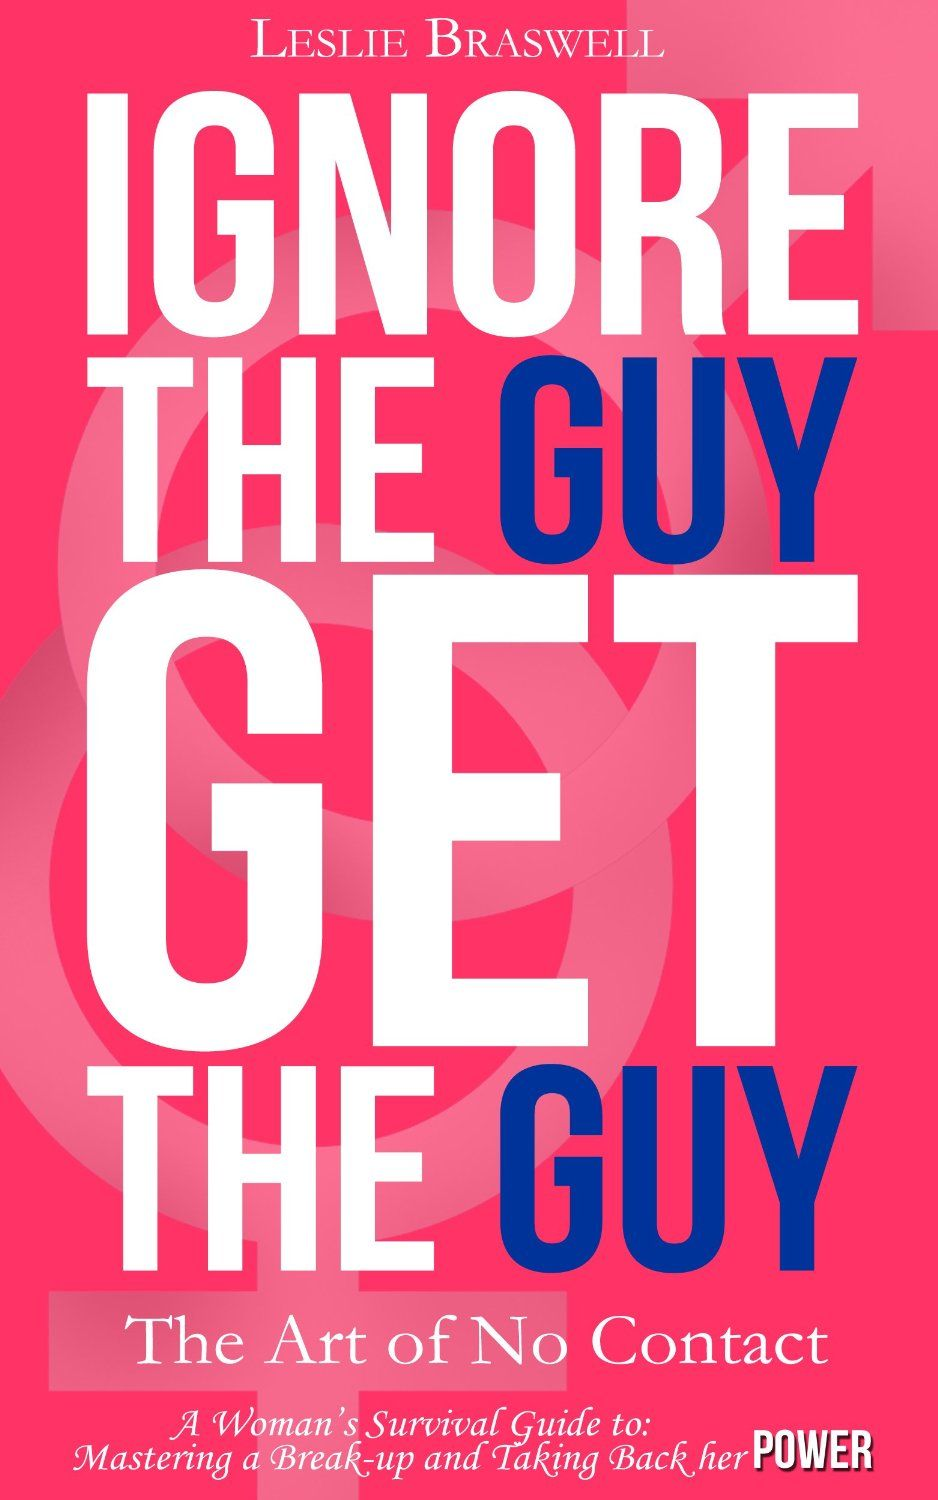 Ignore the guy get the guy the art of no contact a womans ignore the guy get the guy the art of no contact a womans survival guide to mastering a breakup and taking back her power by leslie braswell 725 fandeluxe Gallery